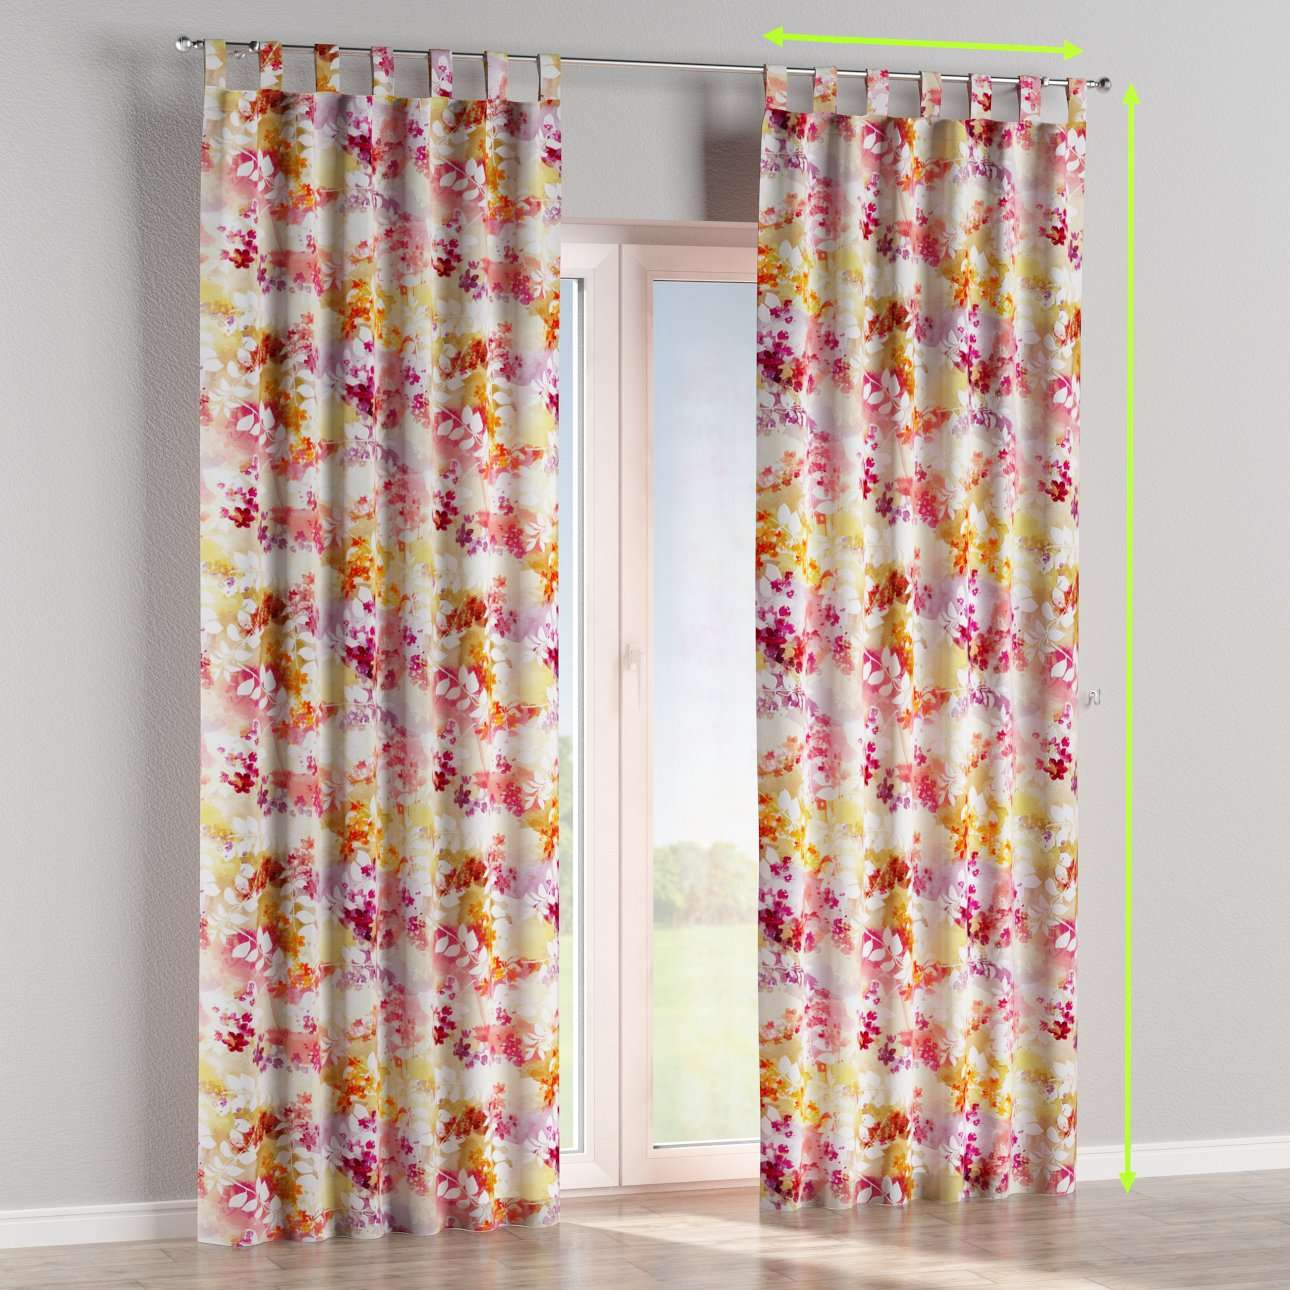 Tab top curtains in collection Monet, fabric: 140-05